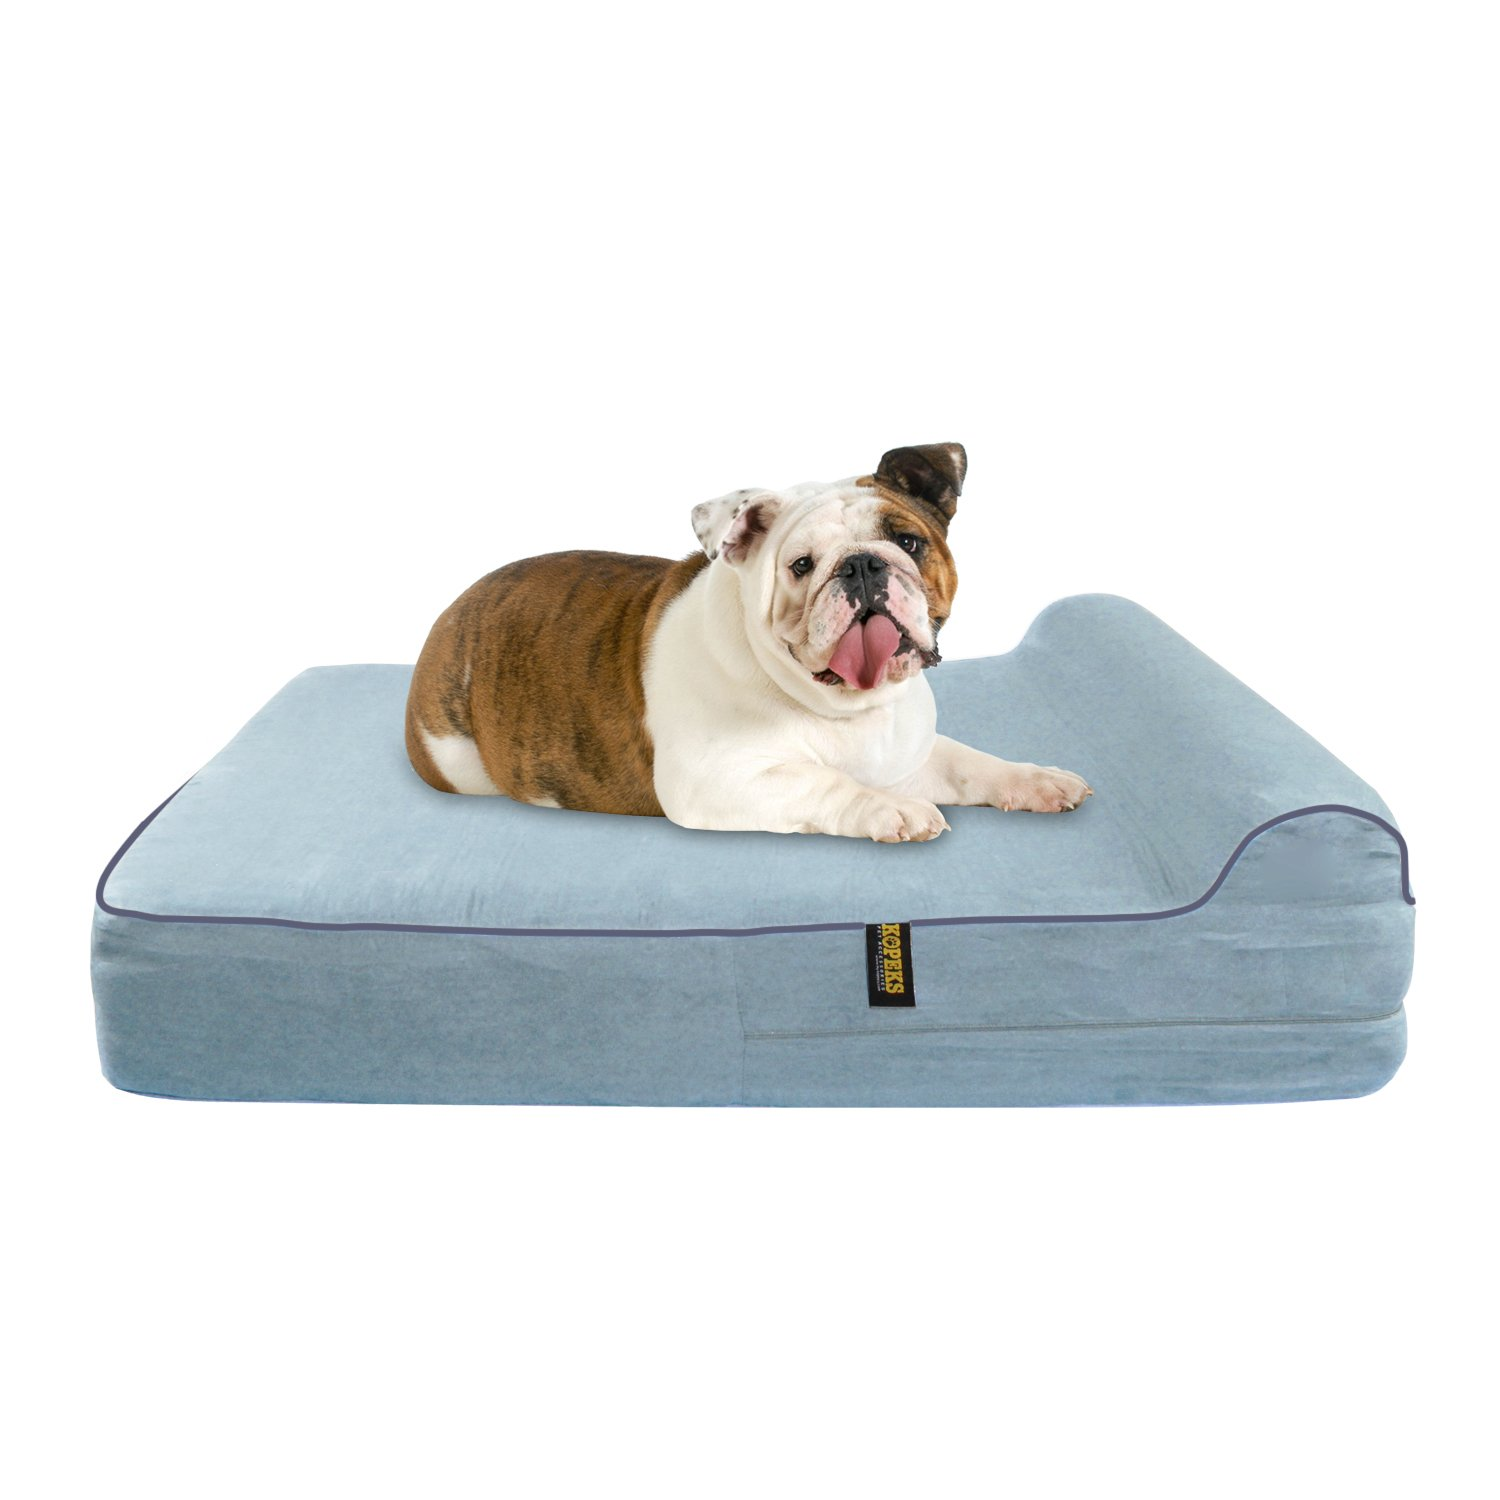 Large 5.5'' Orthopedic Memory Foam Dog Bed With 2.5'' Pillow - Includes Waterproof Inner Protector & Removable Cover - Grey